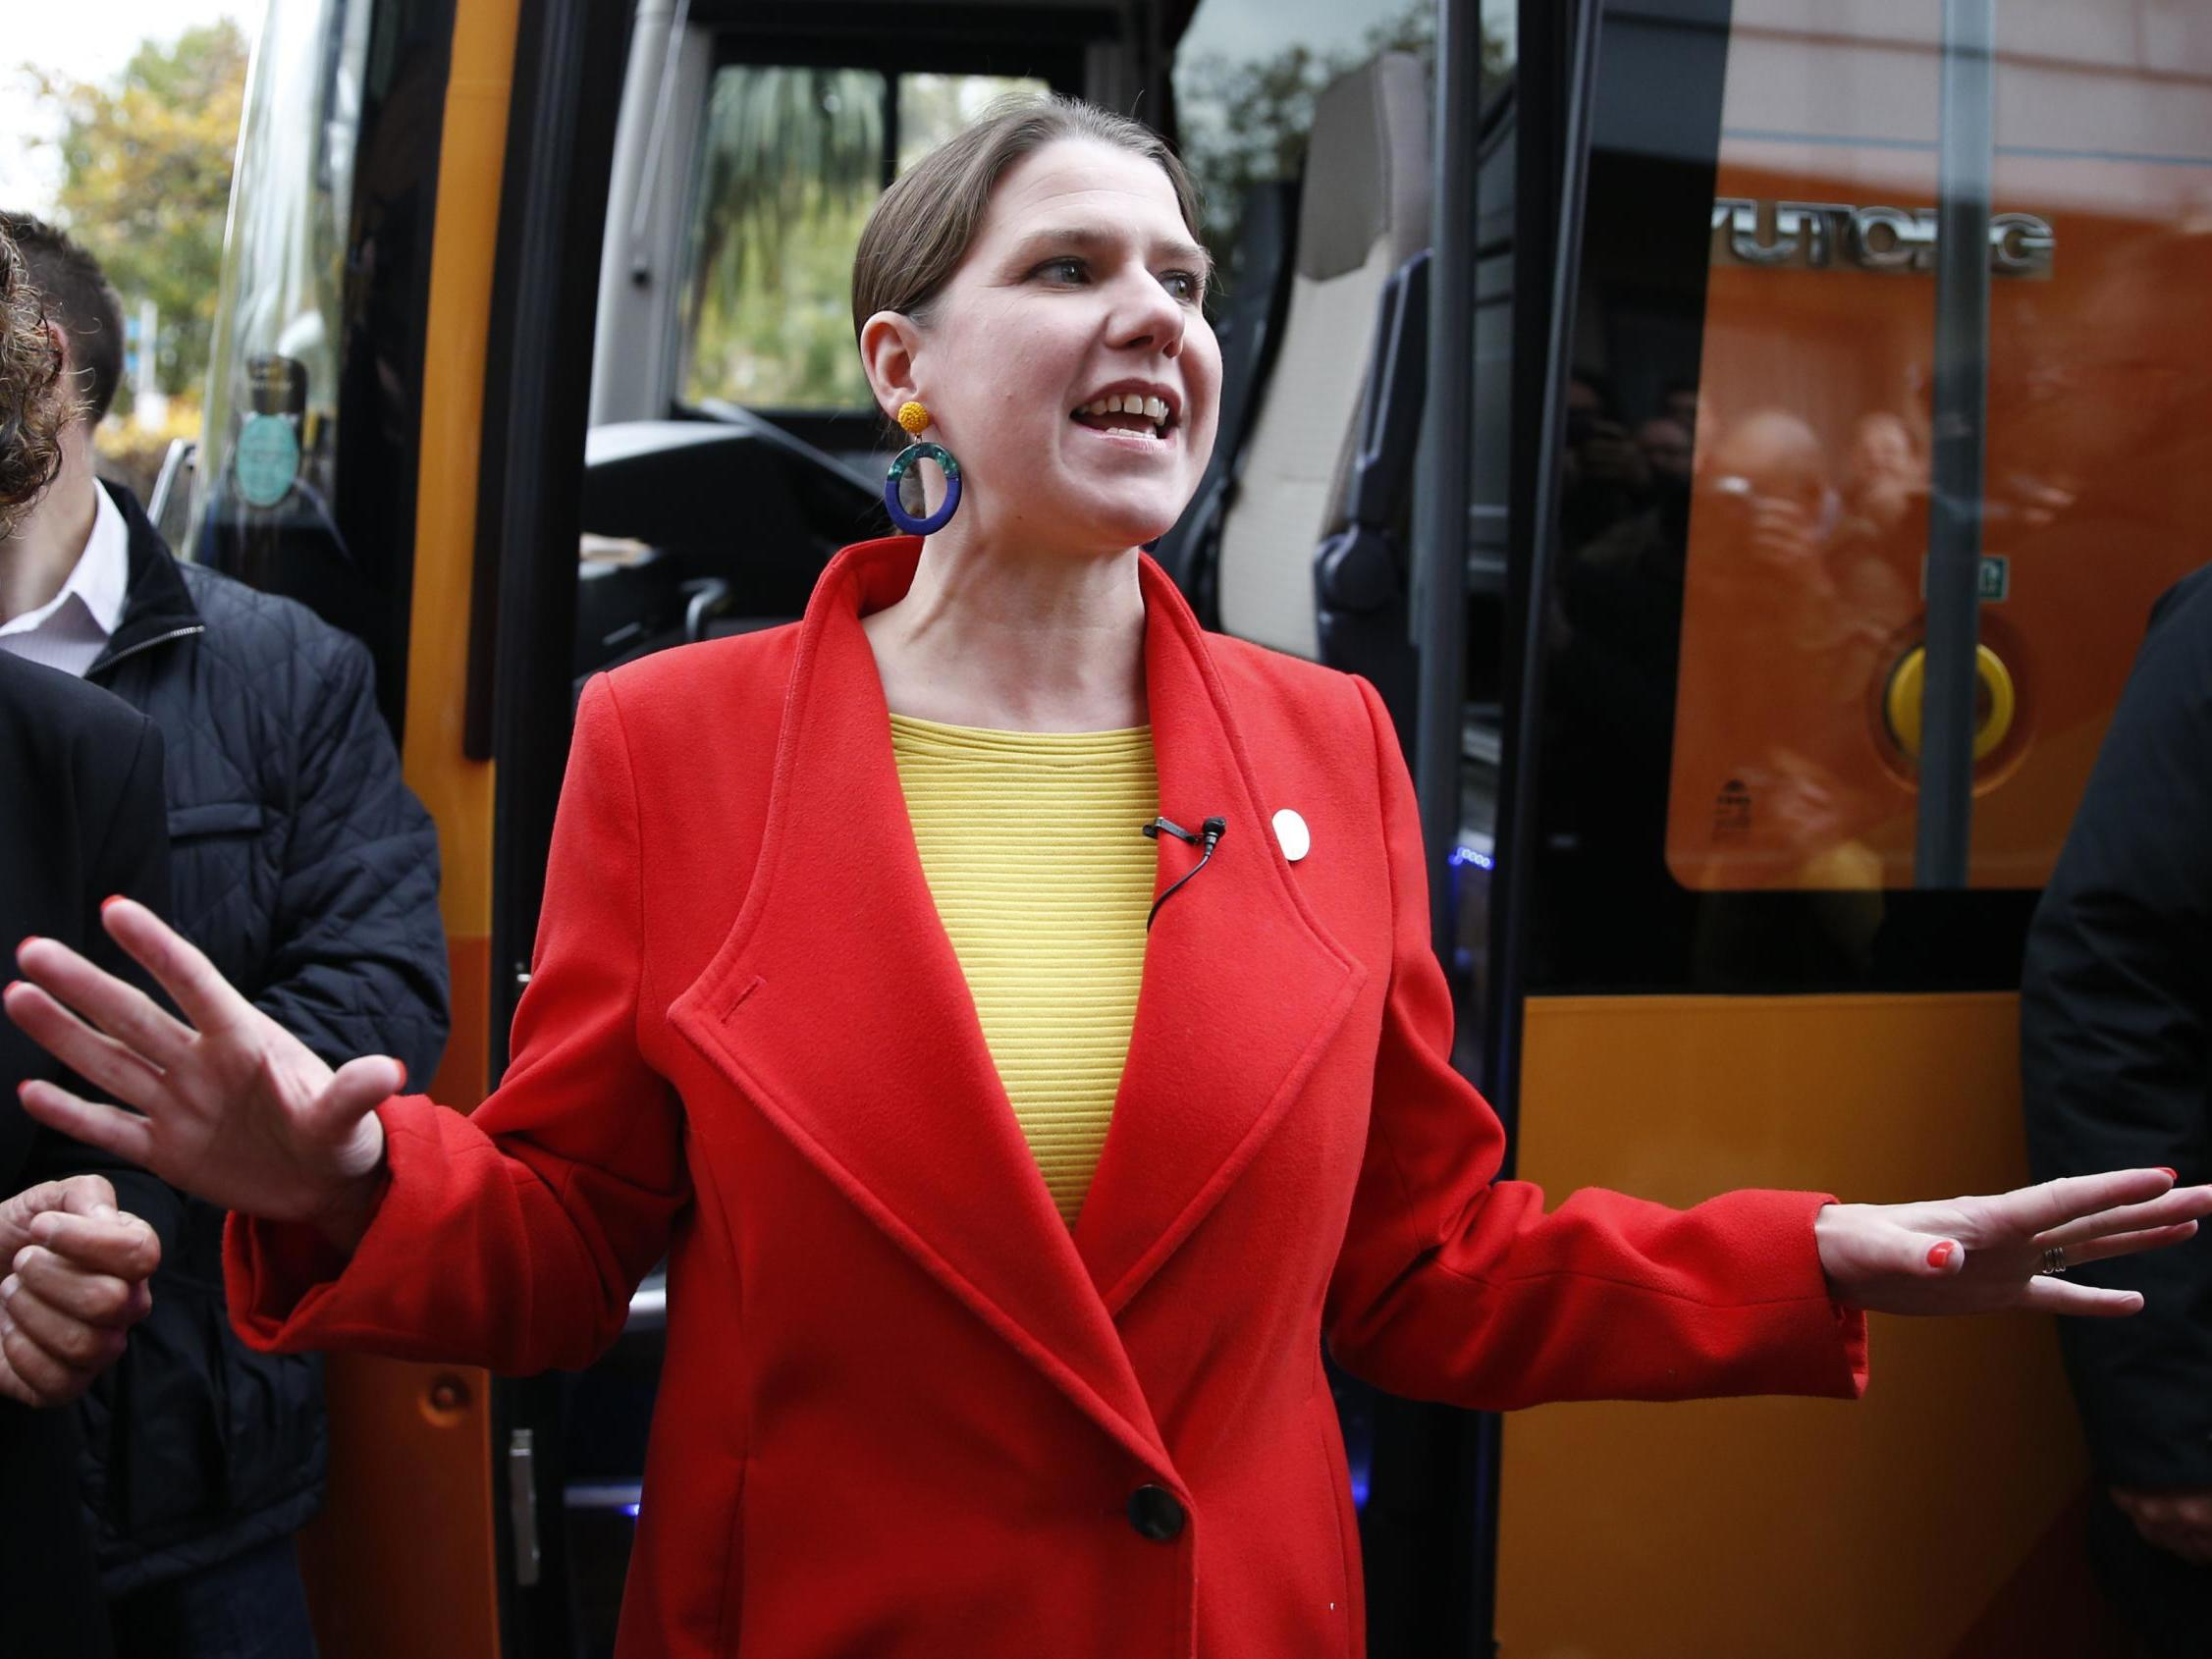 Lib Dem leader Jo Swinson forced to deny shooting stones at squirrels after spoof story goes viral